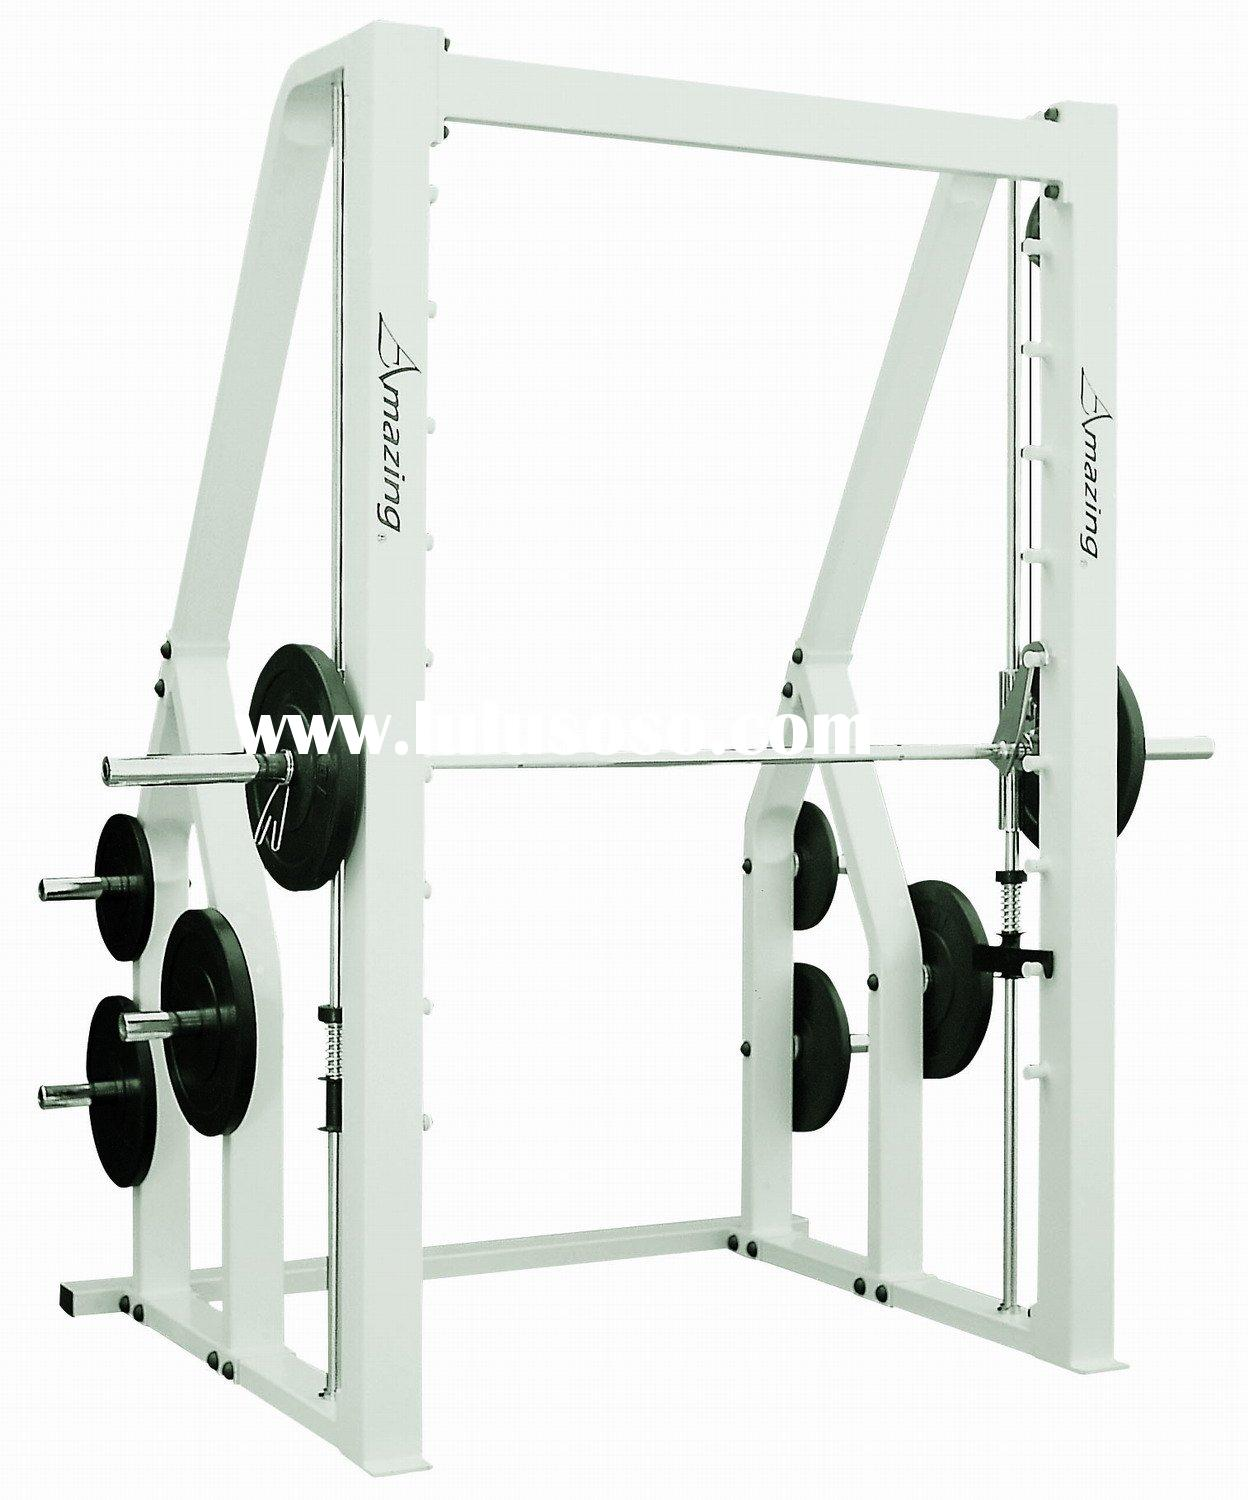 AMA-302 Smith Machine, squat rack, professional commercial strength equipment,strength training